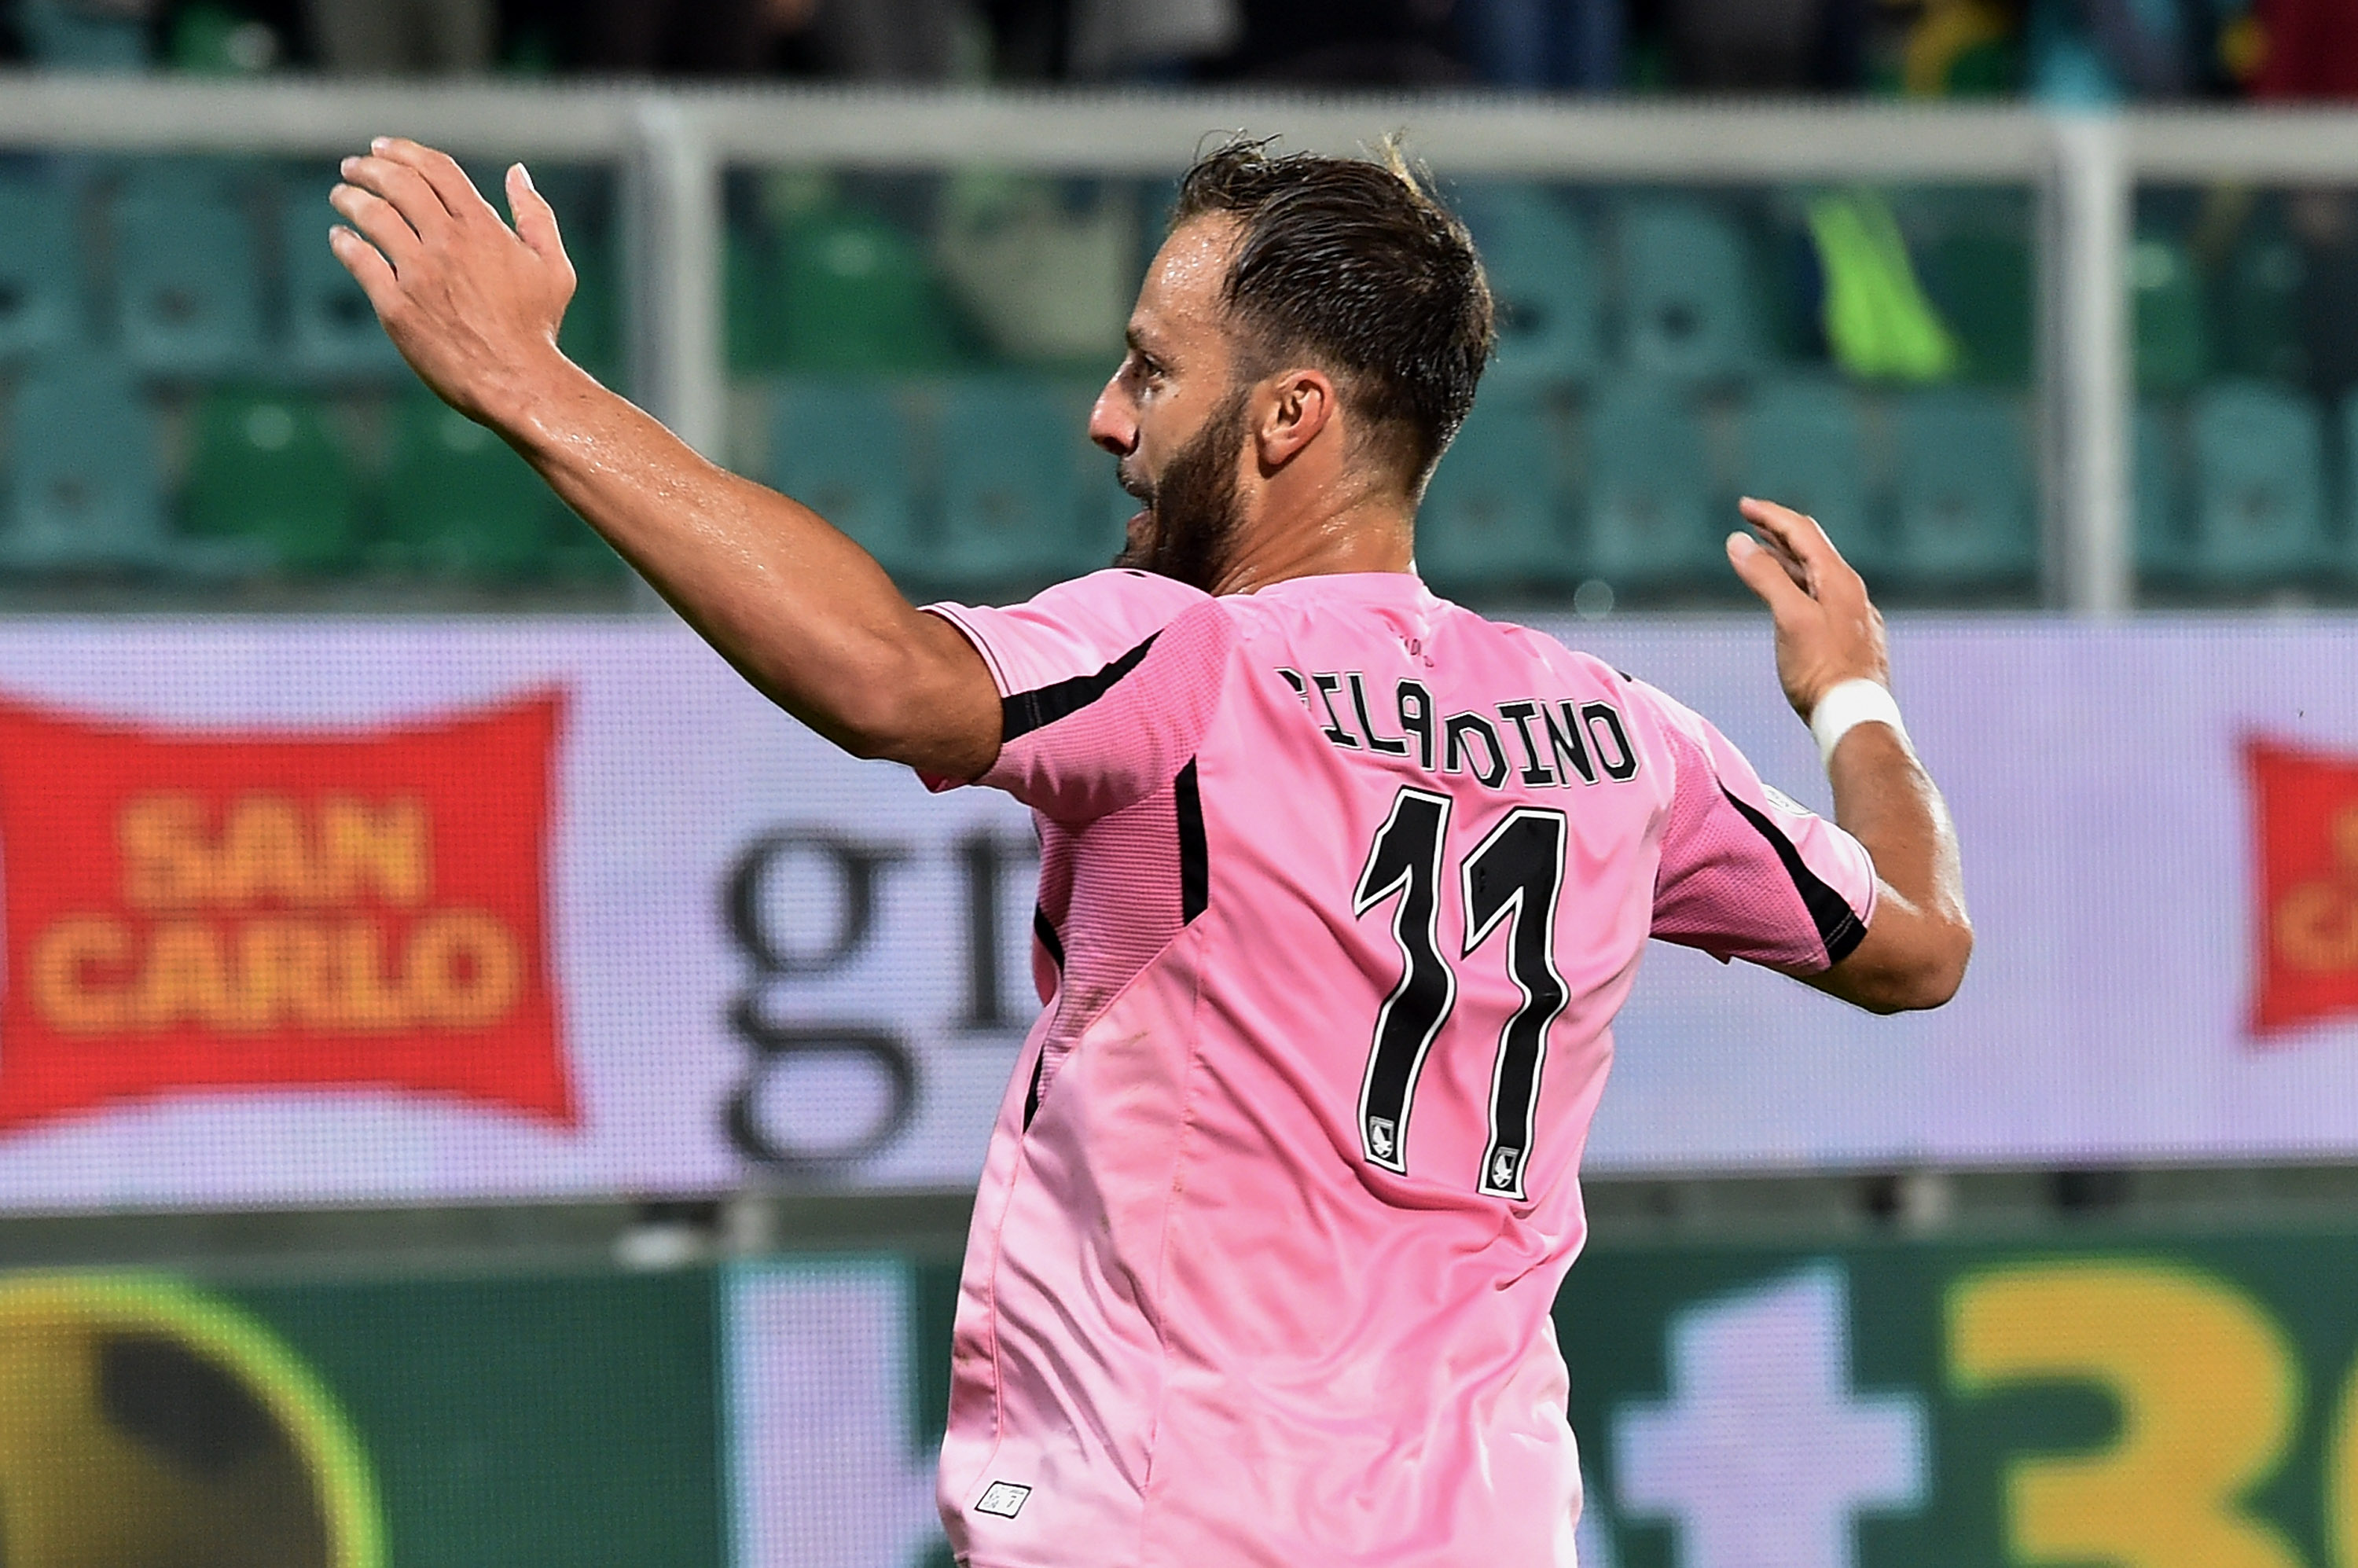 PALERMO, ITALY - OCTOBER 24: Alberto Gilardino of Palermo celebrates after scoring the equalizing goal during the Serie a match between US Citta di Palermo and FC Internazionale Milano at Stadio Renzo Barbera on October 24, 2015 in Palermo, Italy. (Photo by Tullio M. Puglia/Getty Images)